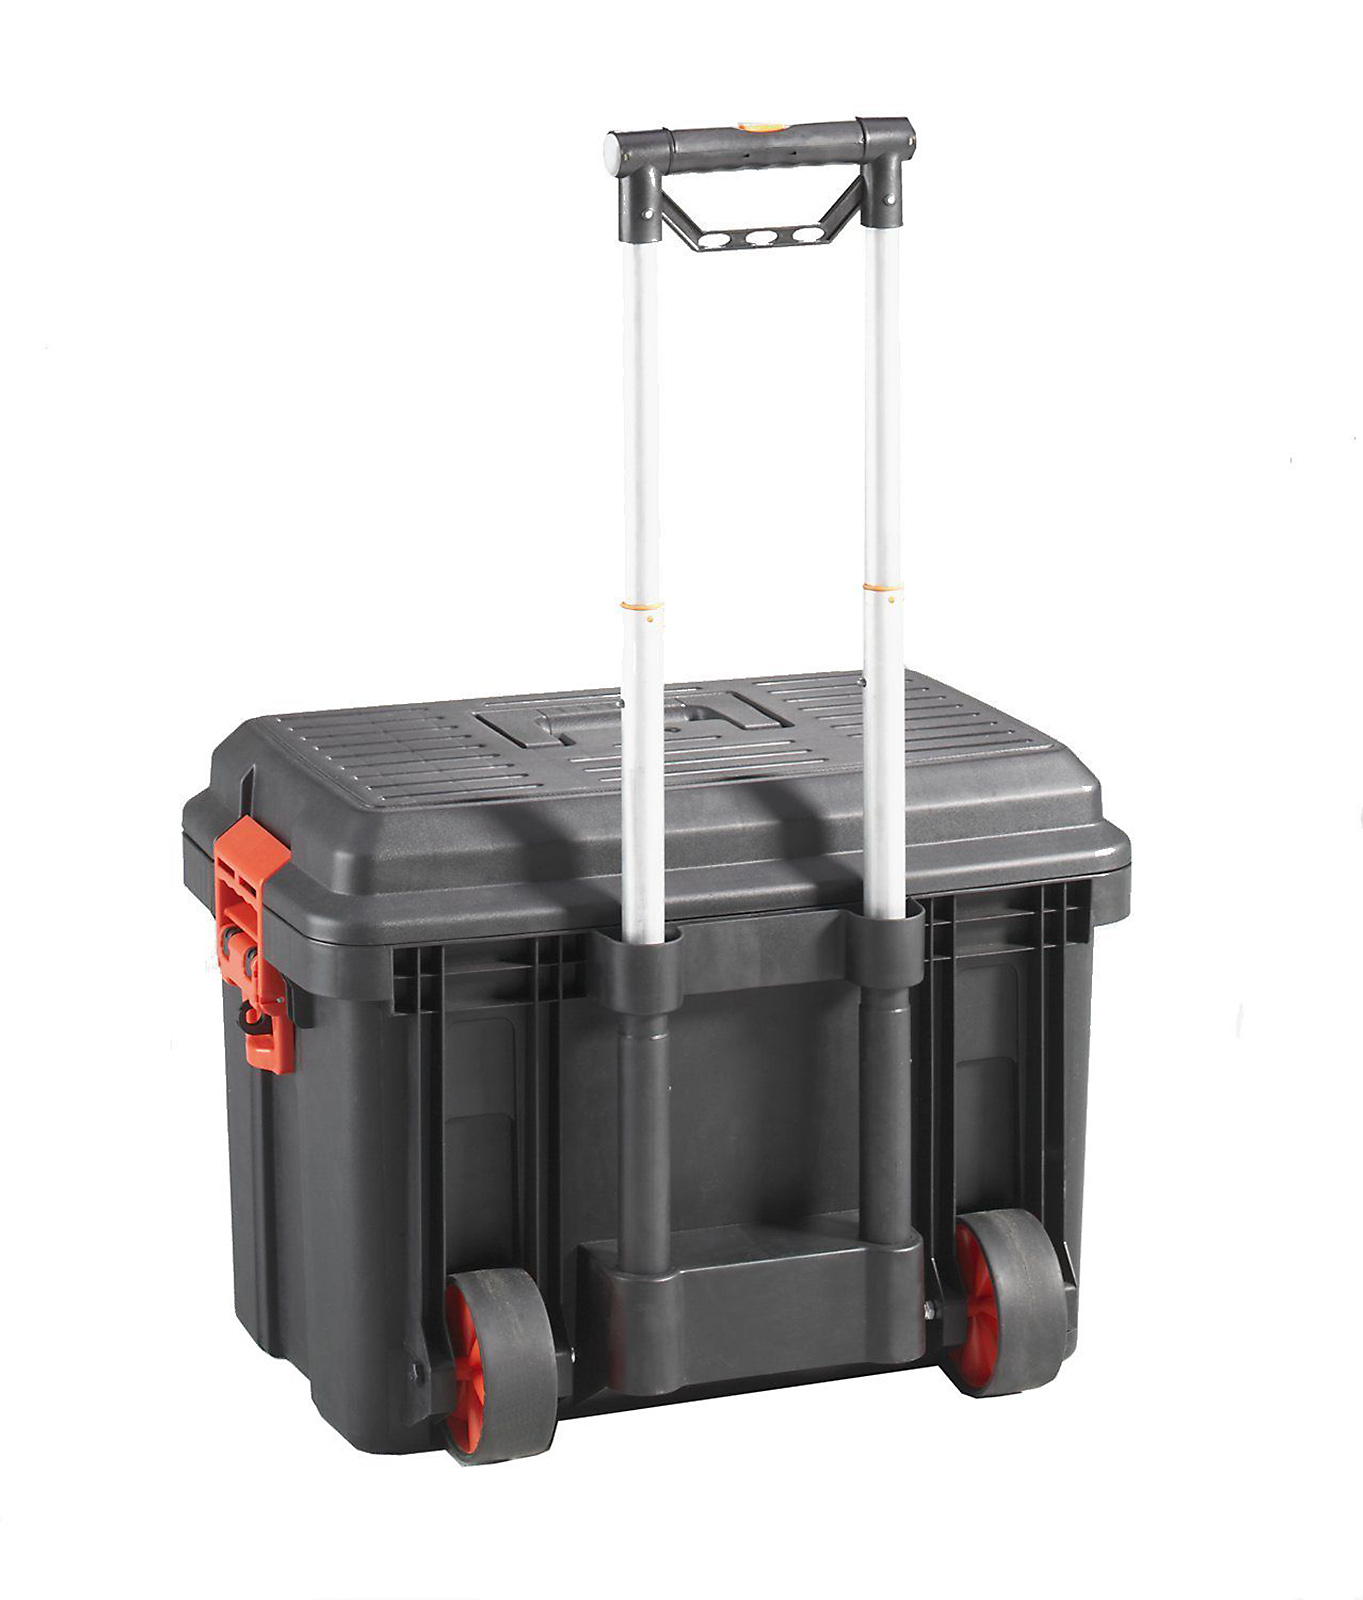 Craftsman Sit/Stand/Tote Truck